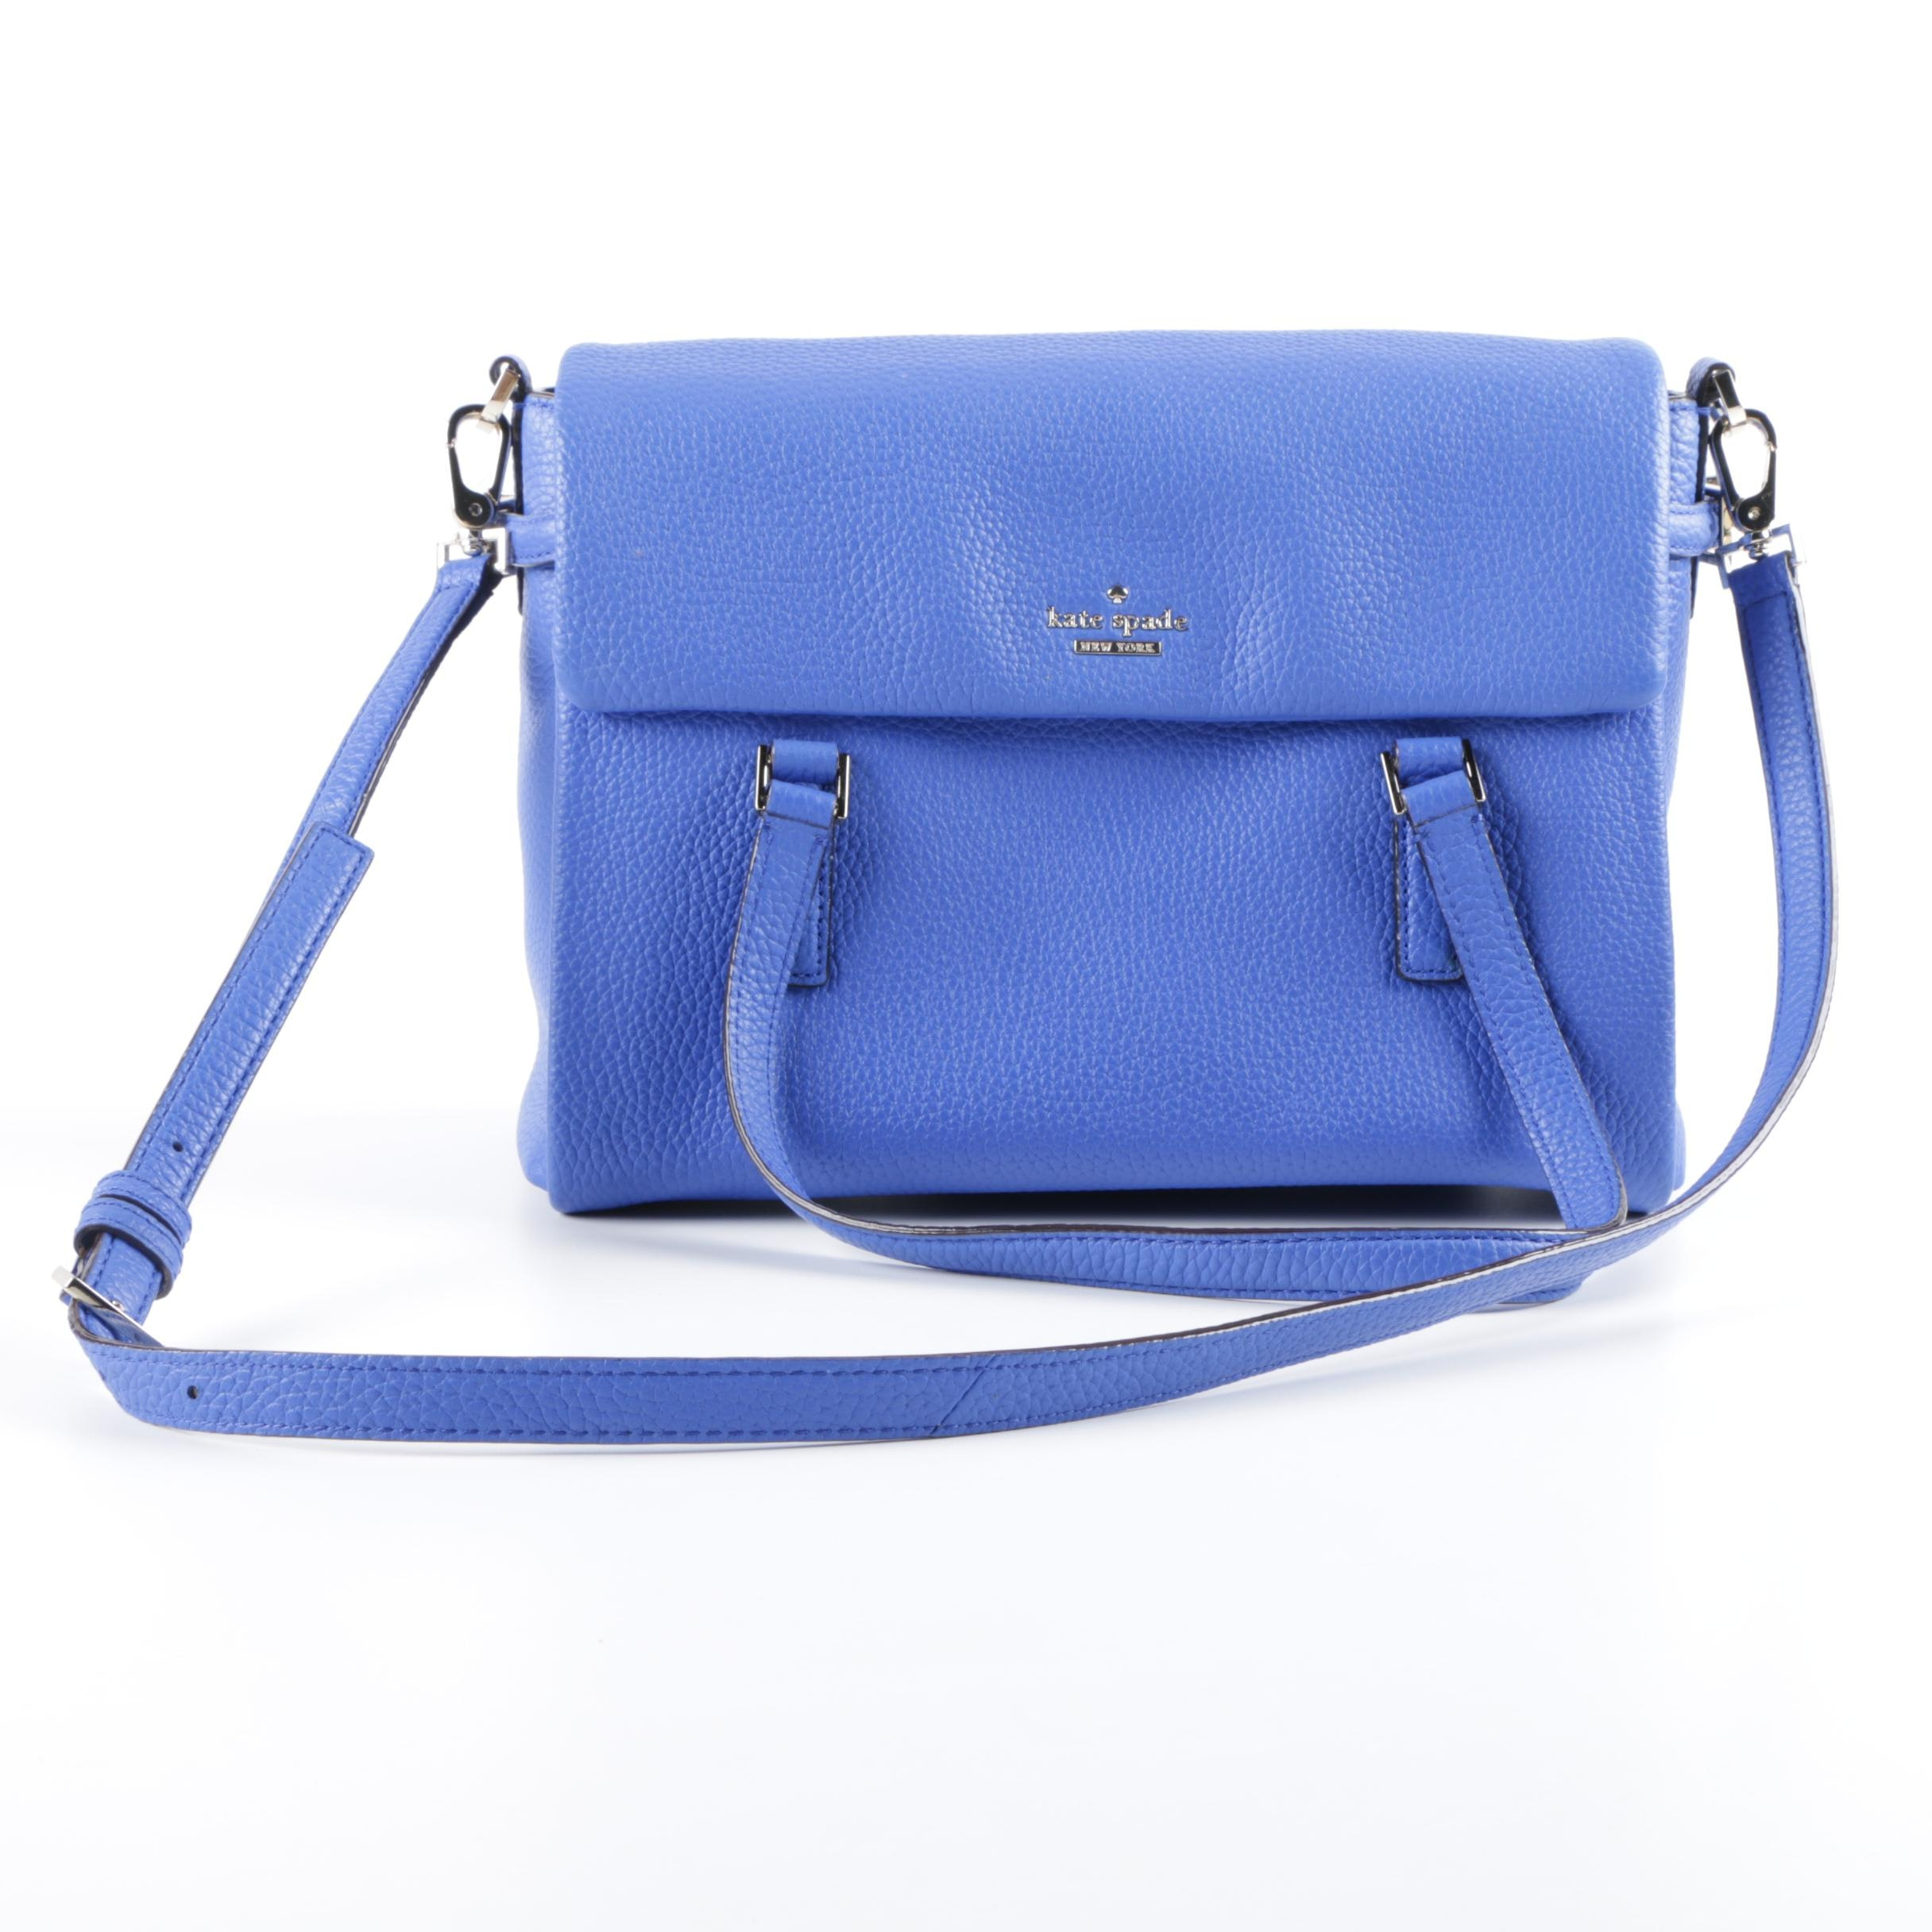 Kate Spade New York Blue Pebbled Leather Front Flap Convertible Satchel